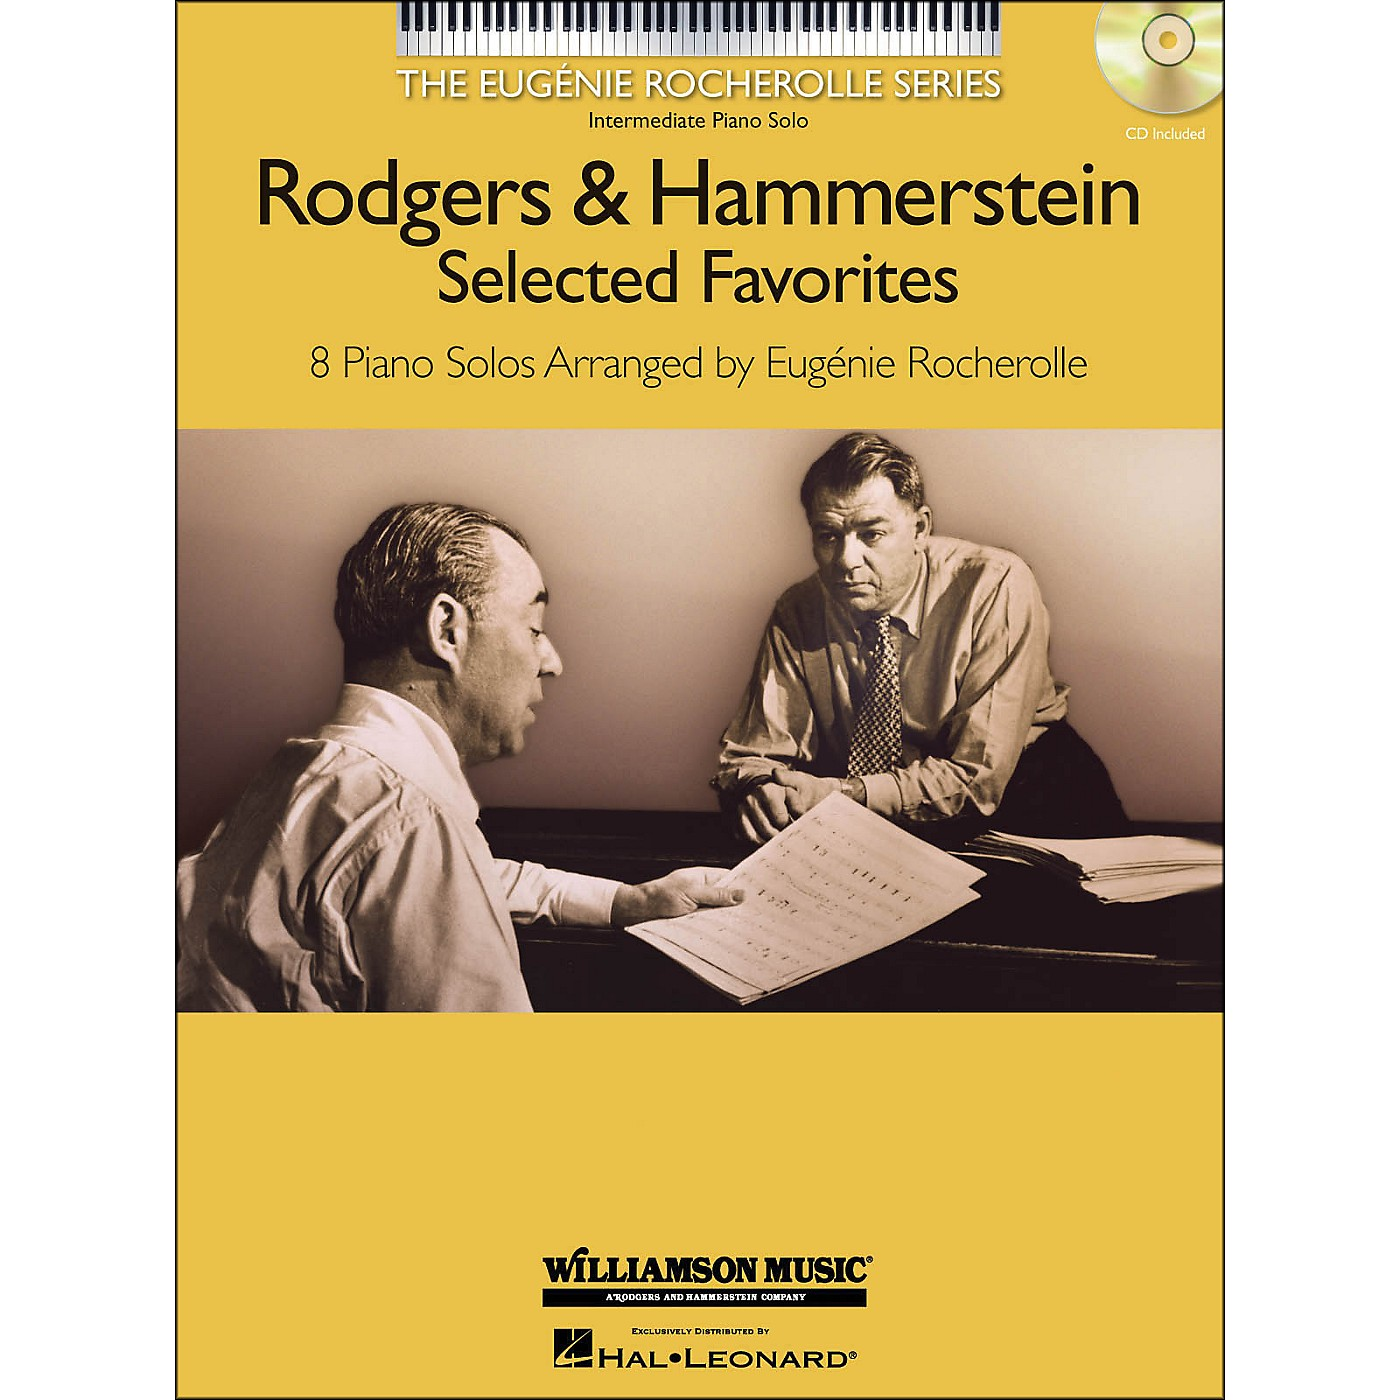 Hal Leonard Rodgers & Hammerstein Selected Favorites - The Eugenie Rocherolle Series (Book/CD) arranged for piano solo thumbnail